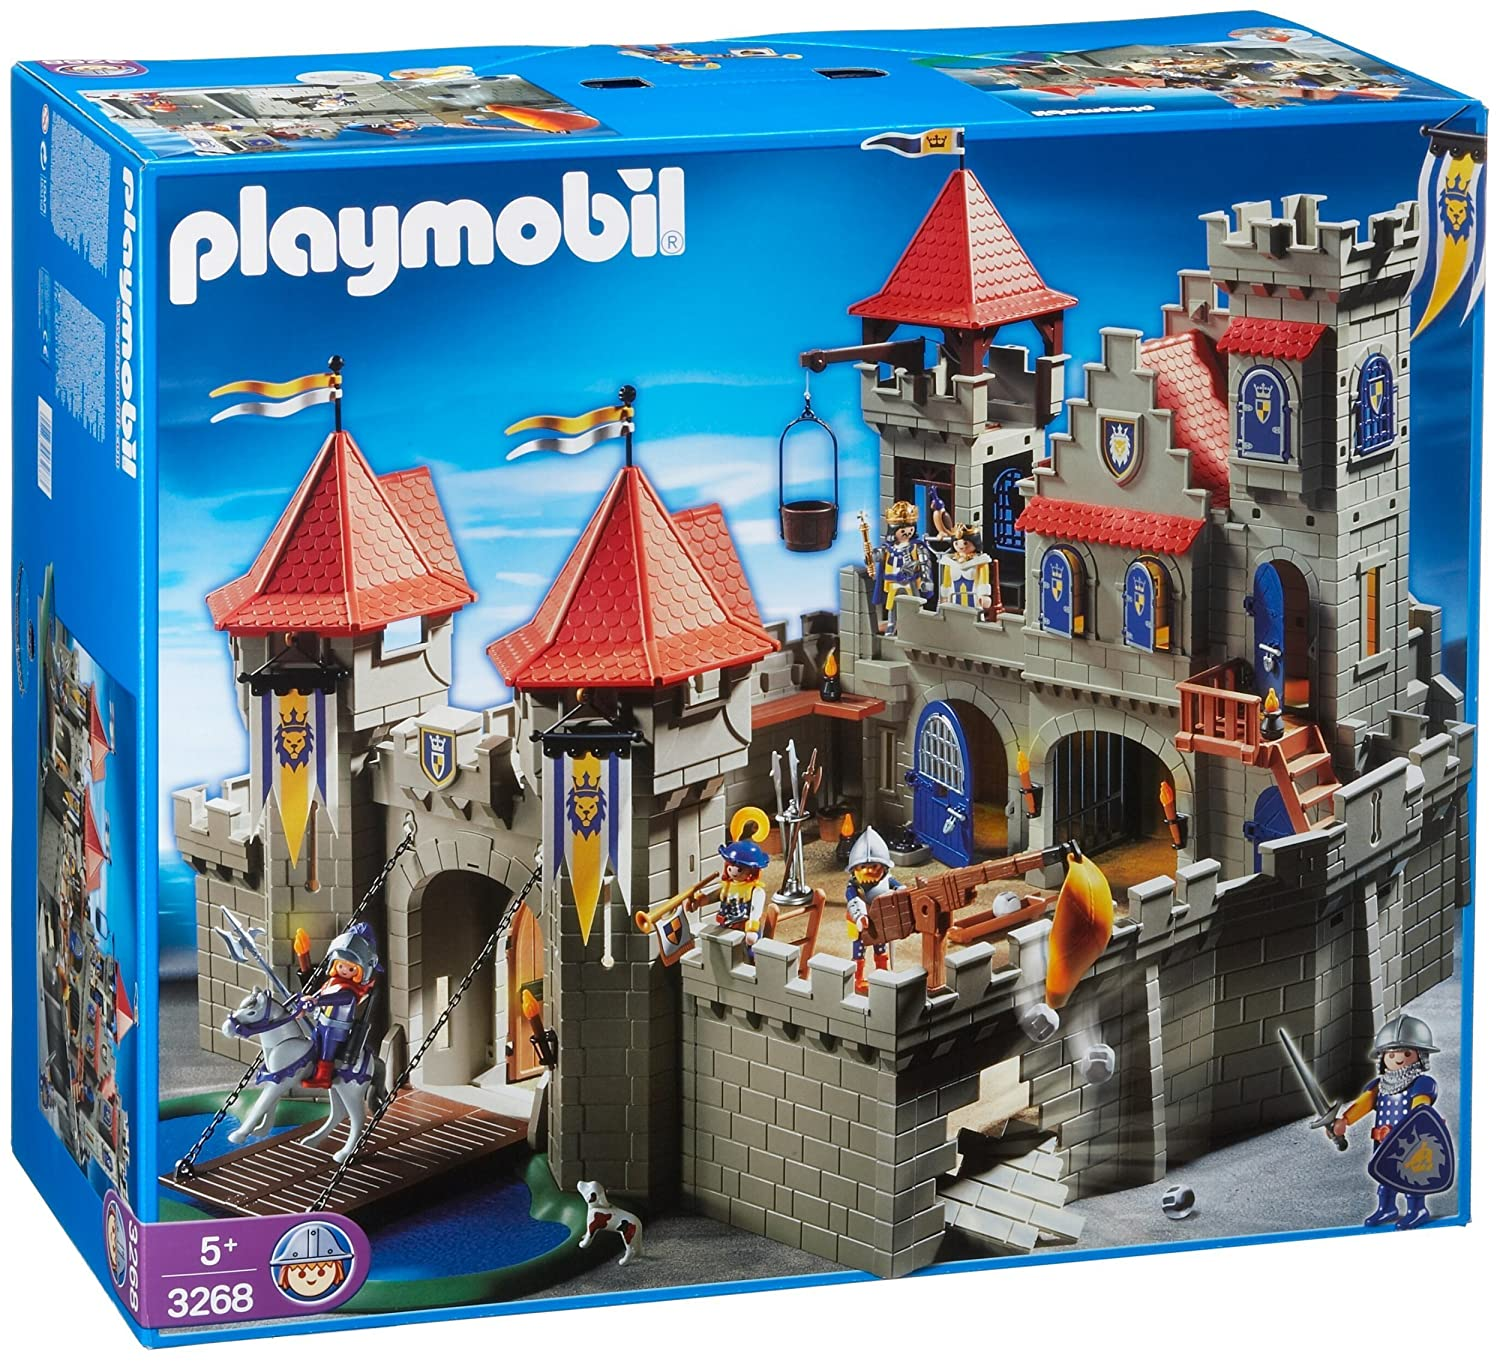 Chateau fort playmobil - Chateau chevalier playmobil ...